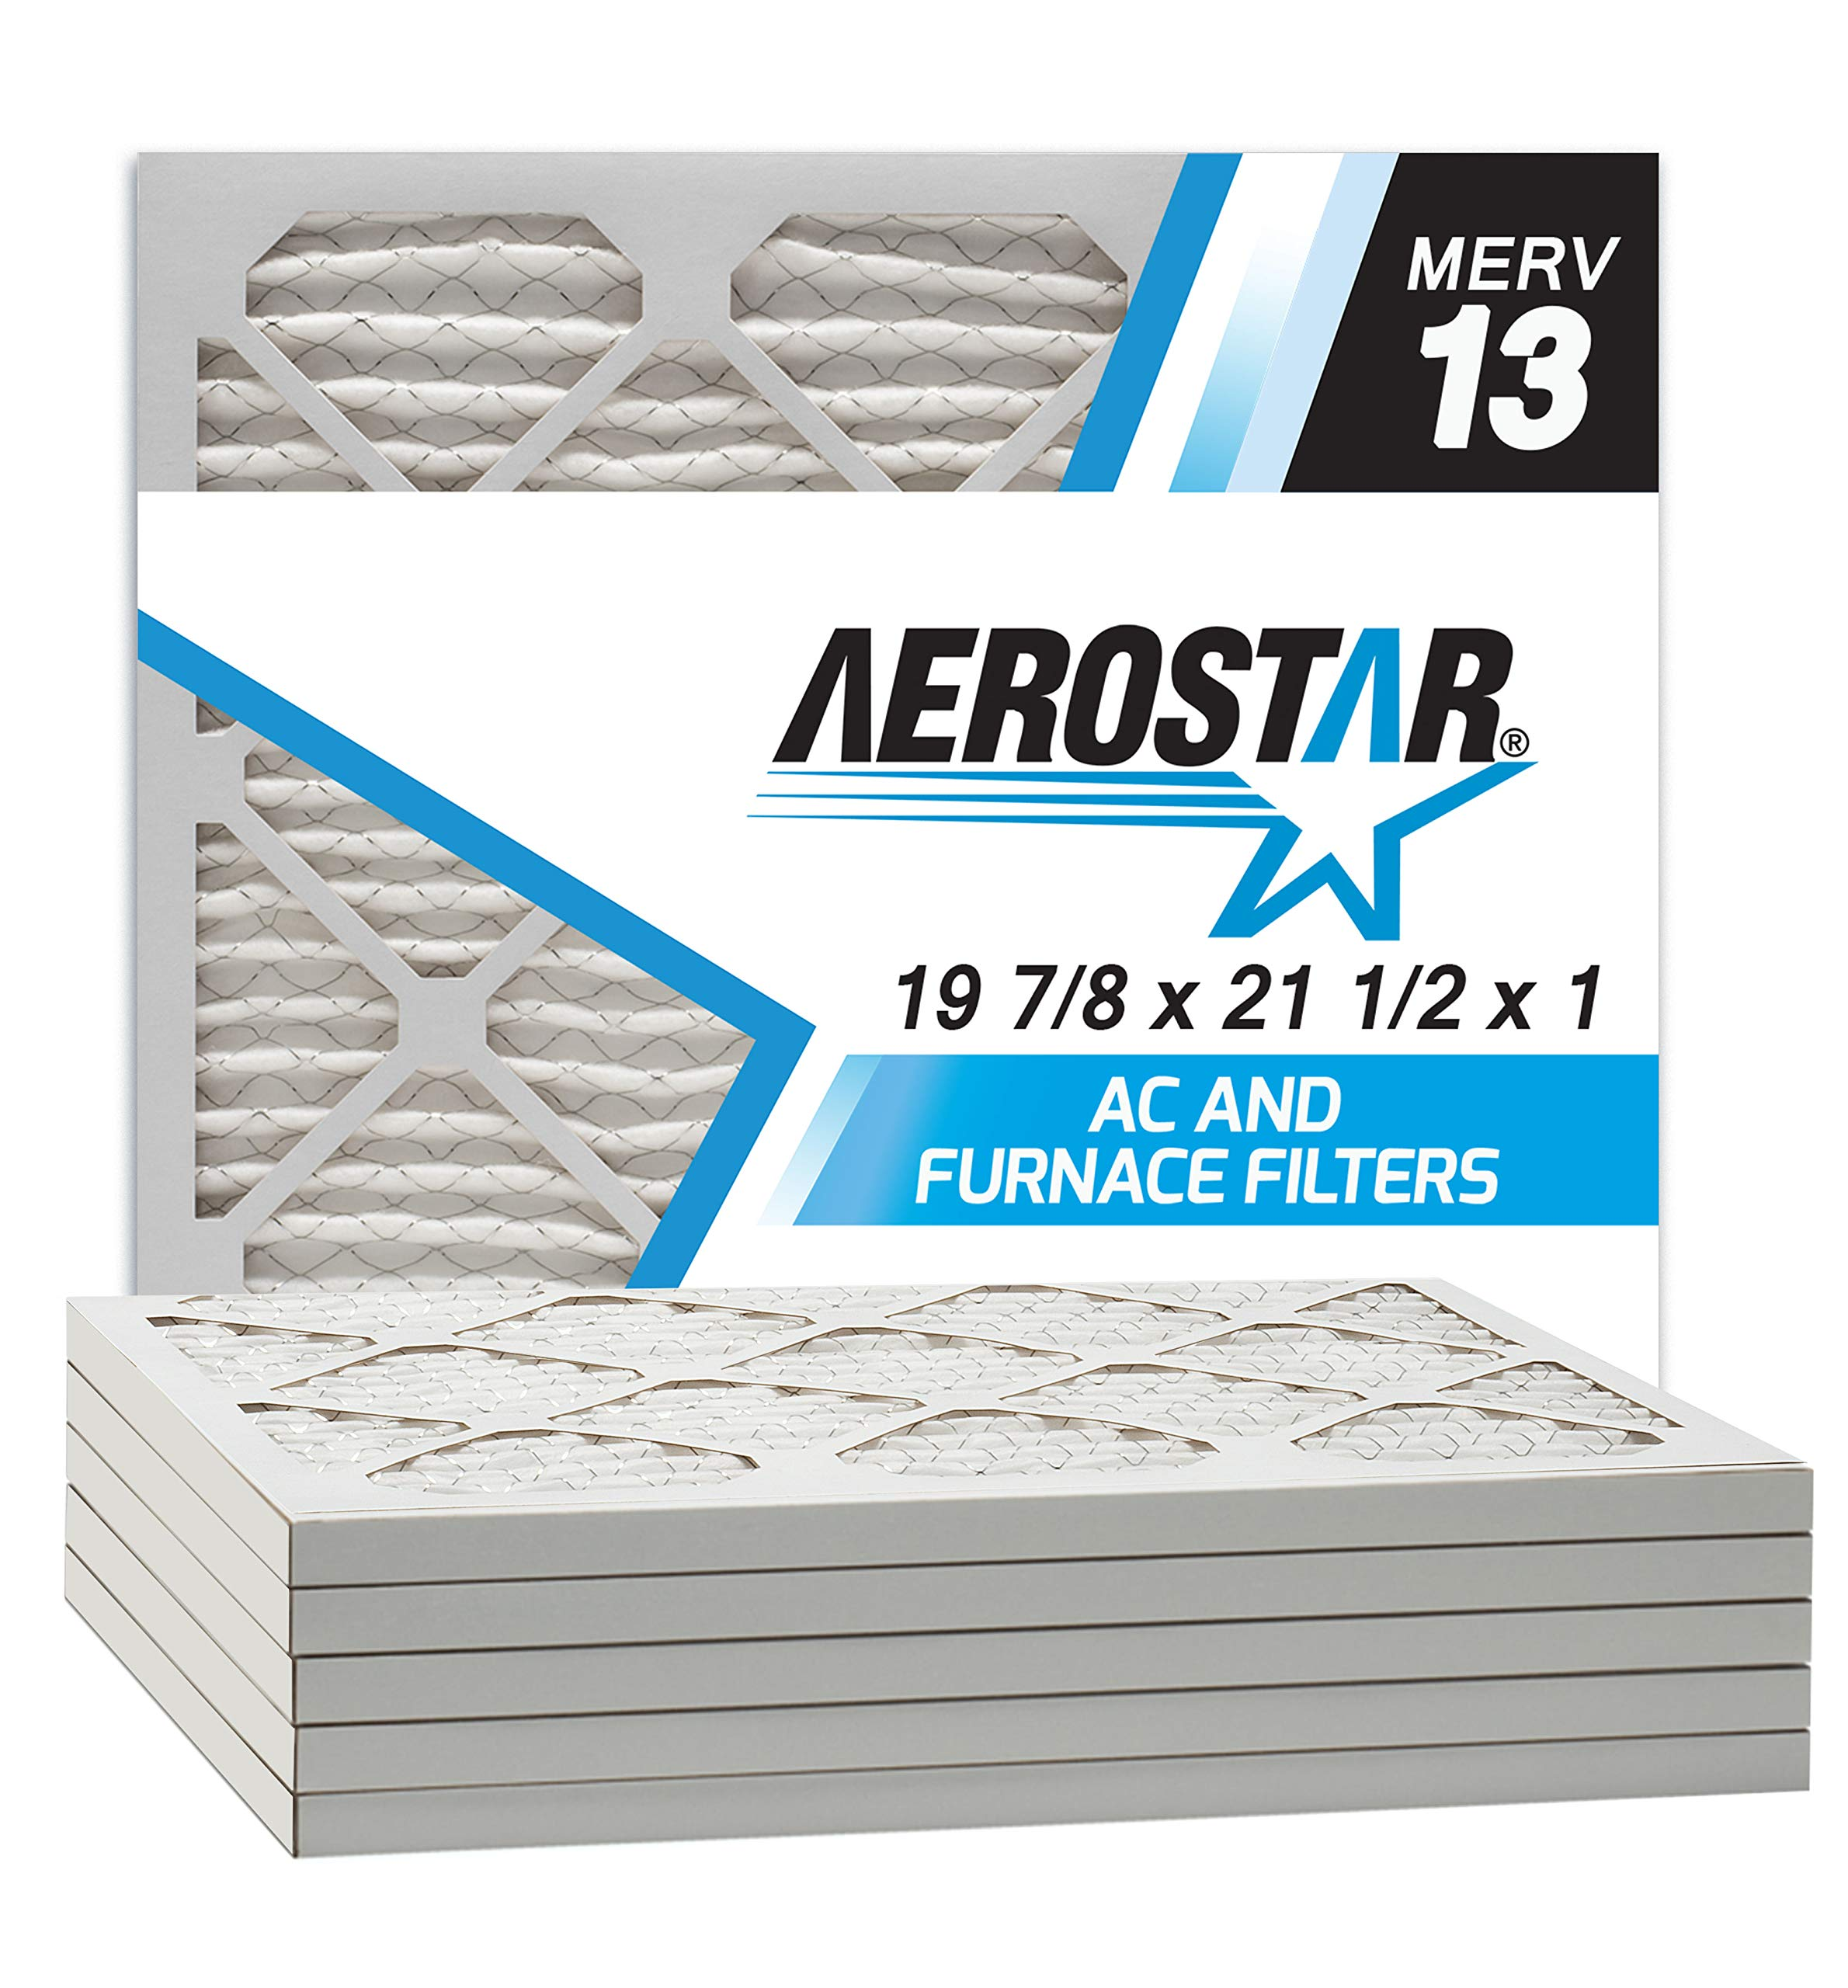 Aerostar Pleated Air Filter, MERV 13, 19 7/8 x 21 1/2 x 1, Pack of 6, Made in the USA by Aerostar